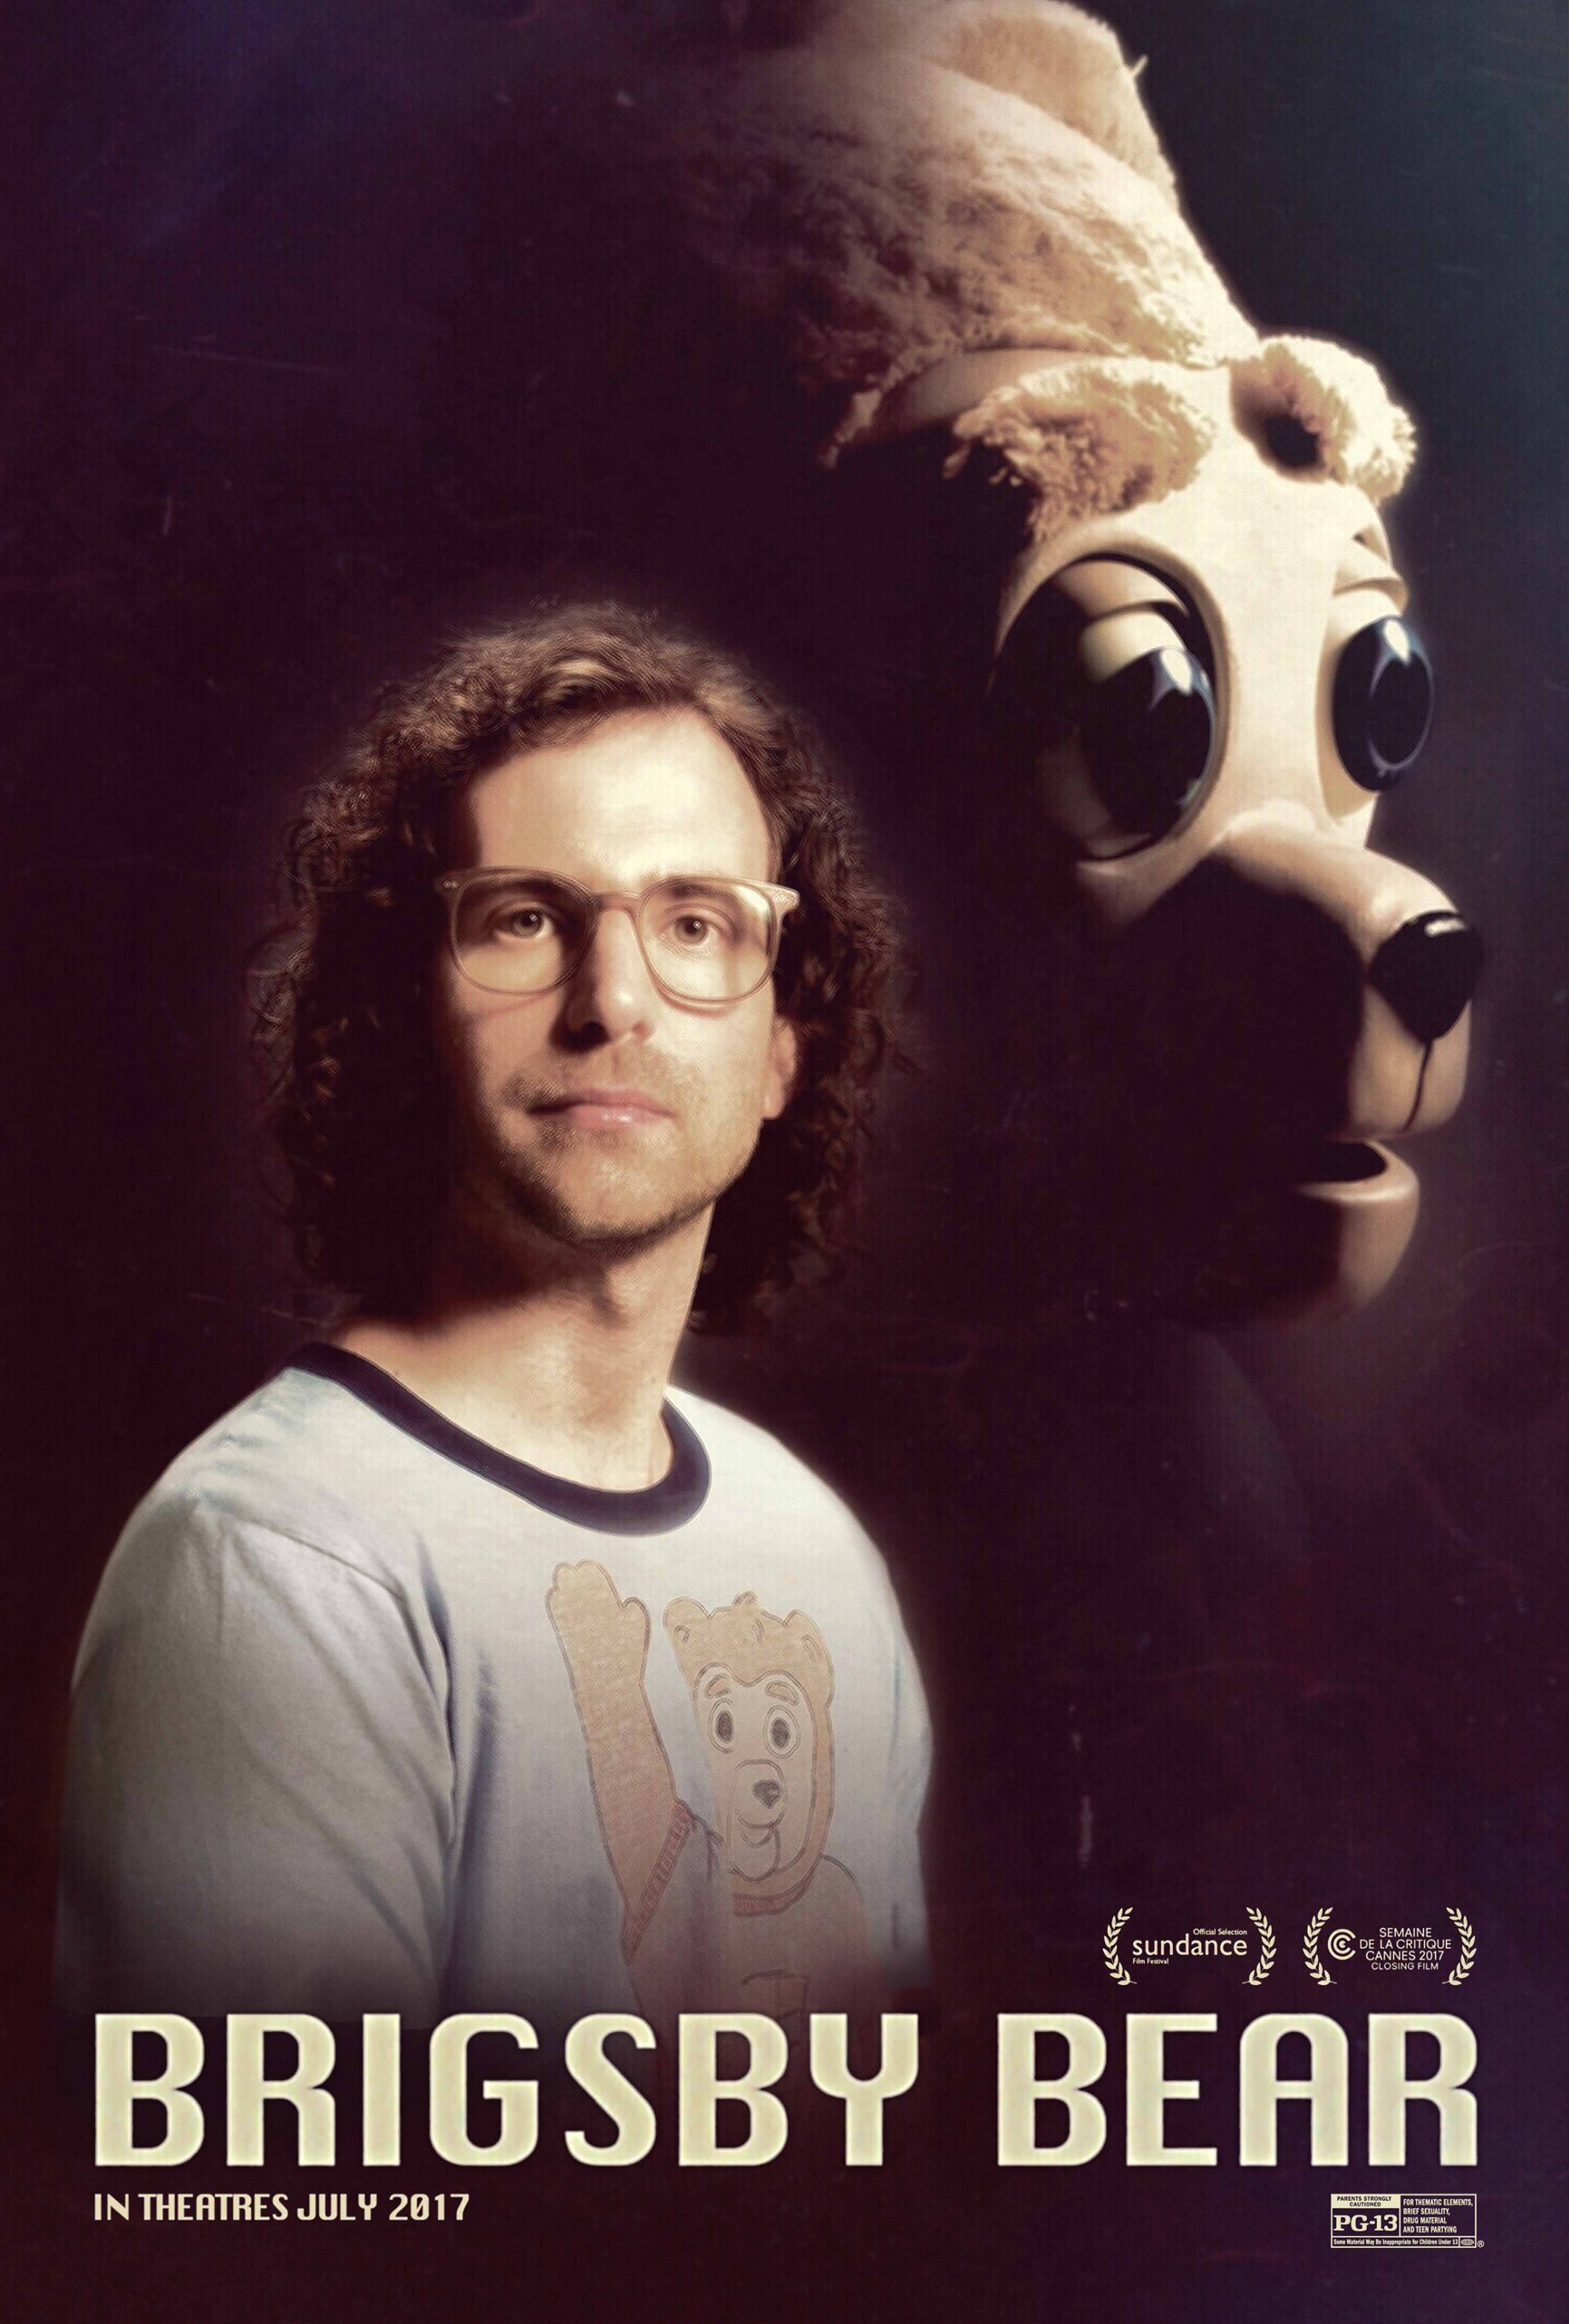 Brigsby Bear has become a pet ...